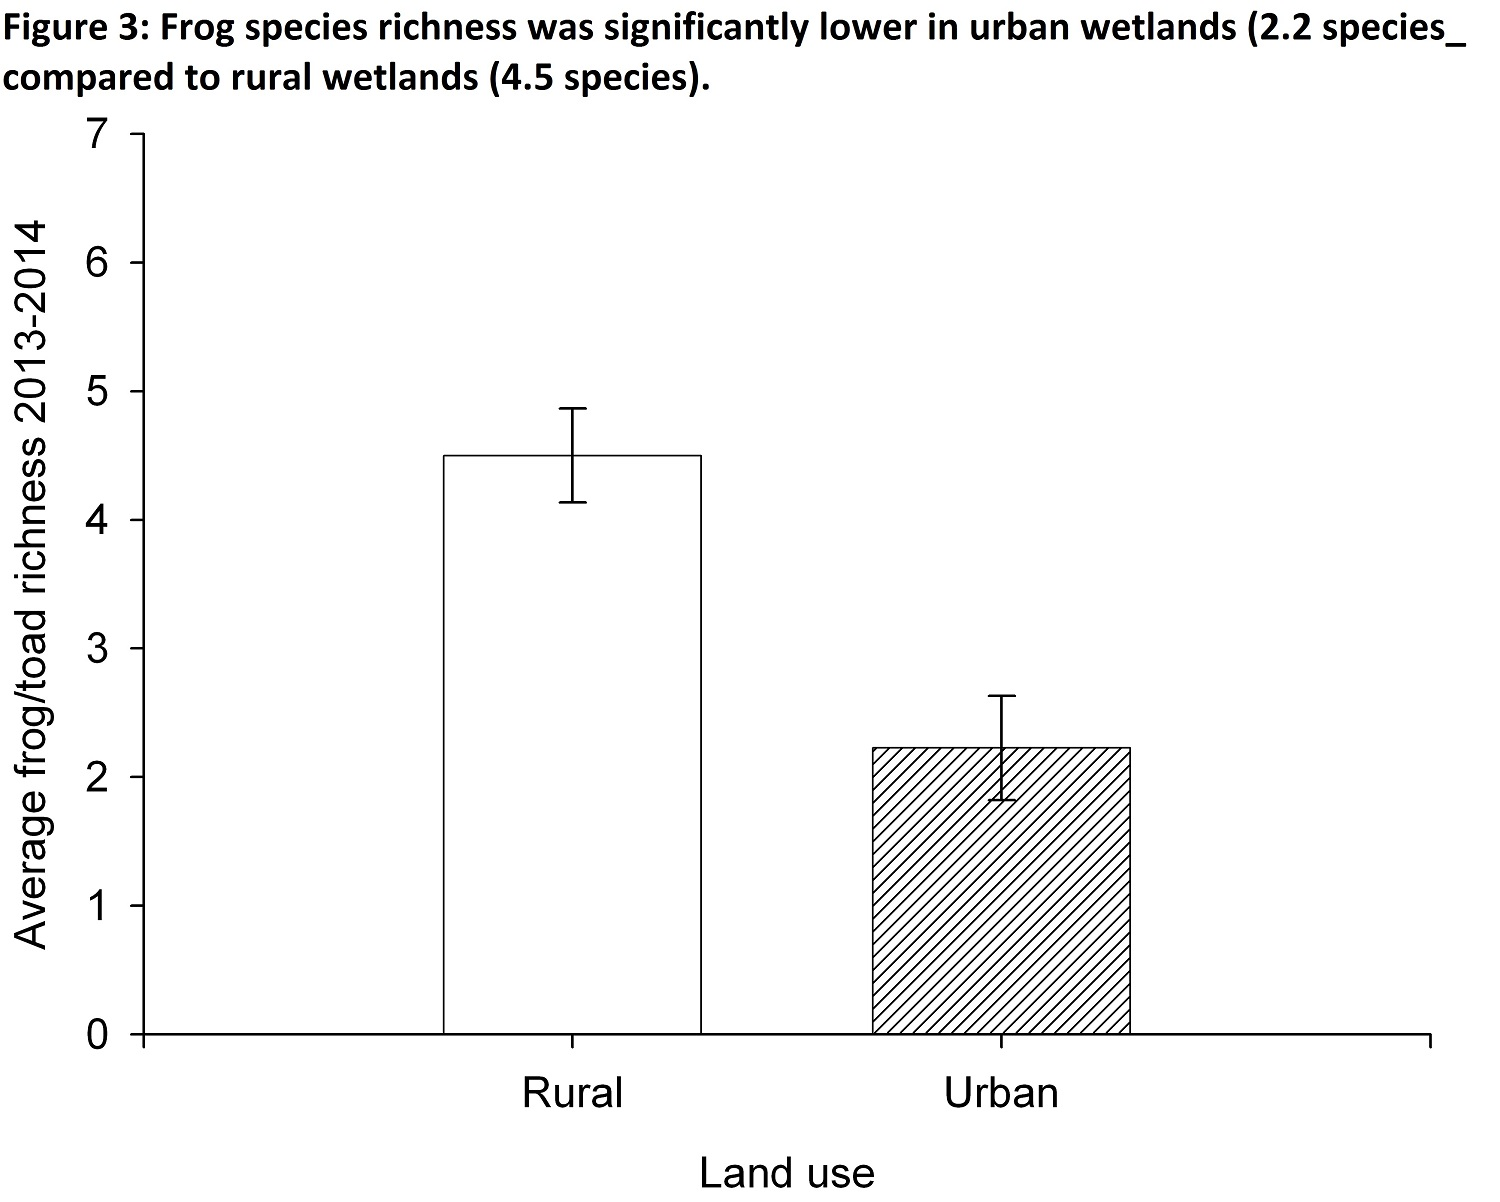 Chart showing frog species richness was significantly lower in urban wetlands versus rural wetlands